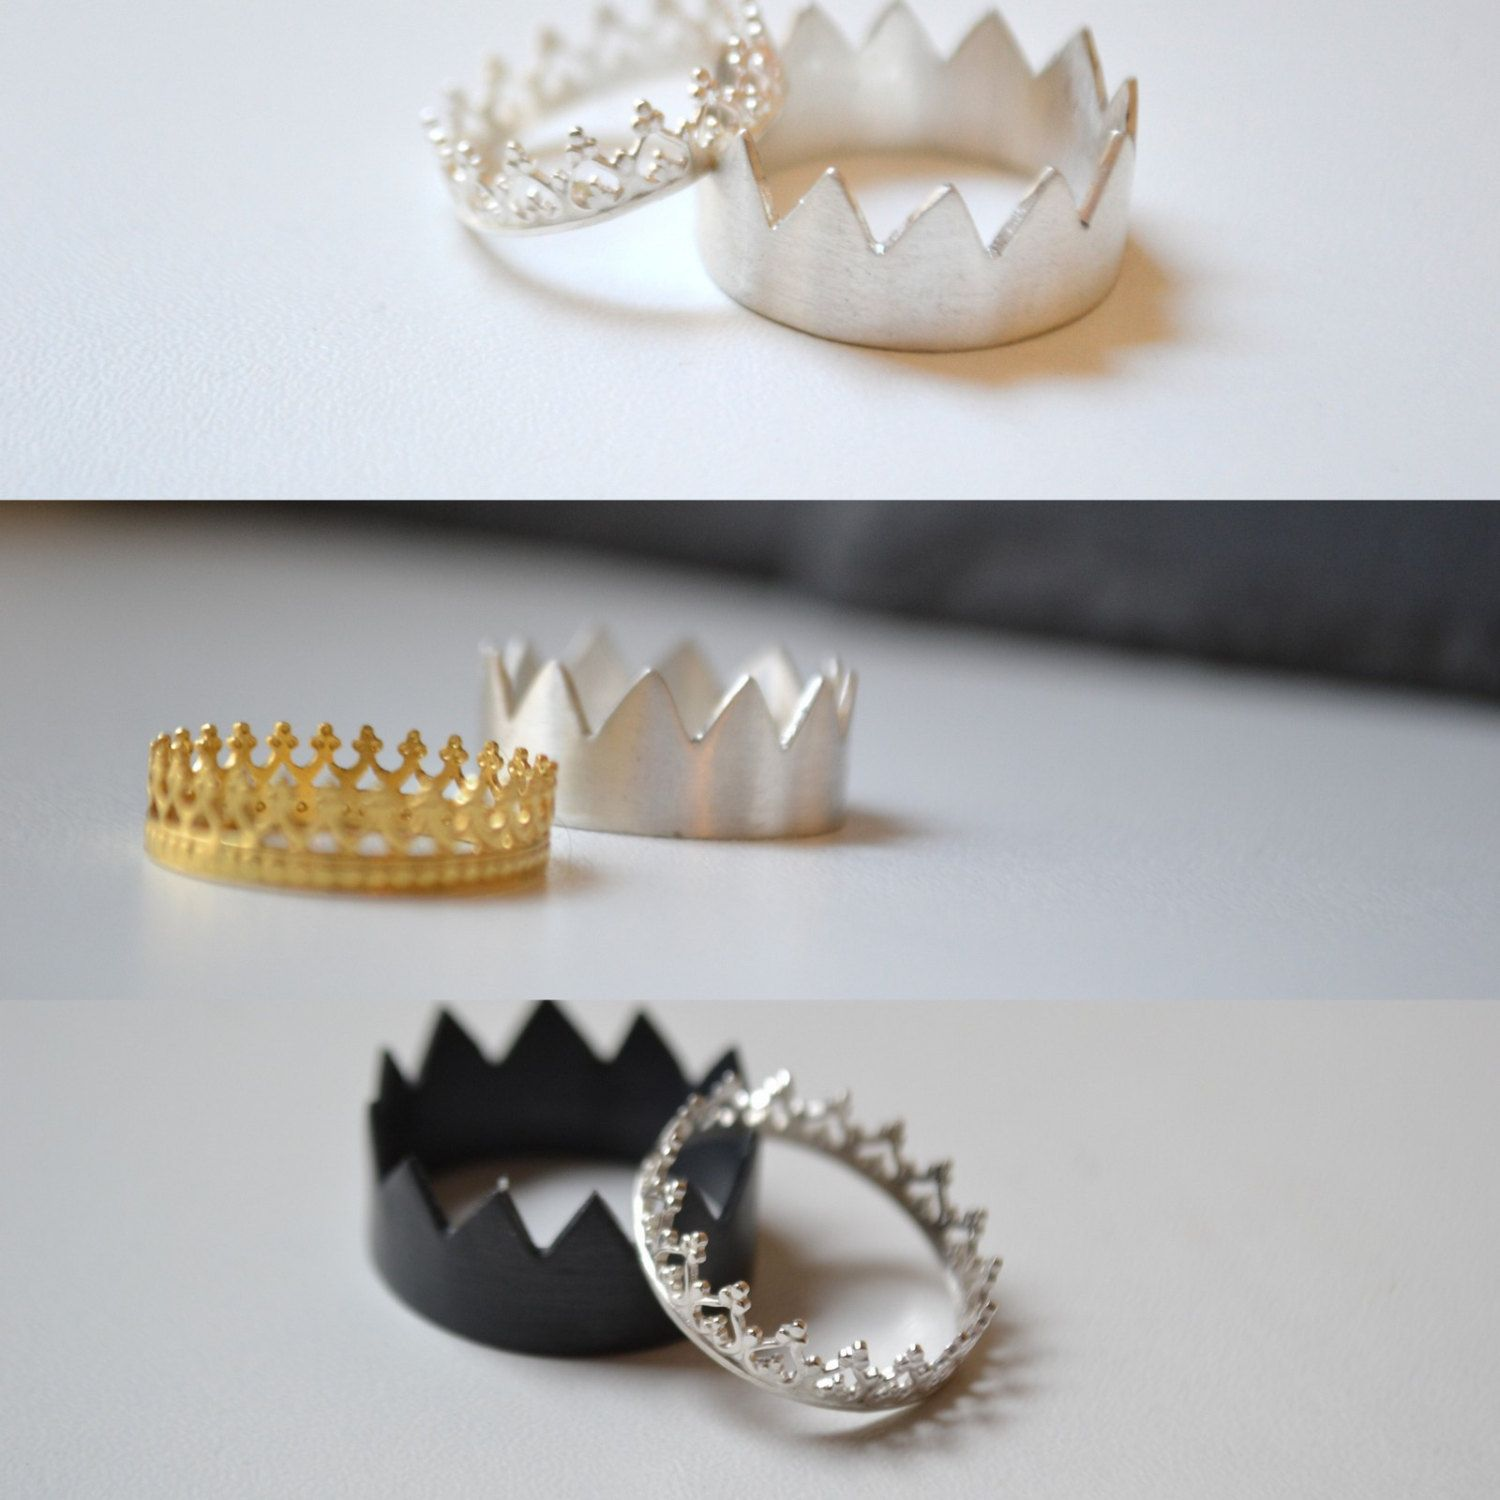 Jewelry Maker In Paris Hand Makes These Crown Rings For Men And Women Wedding Bands